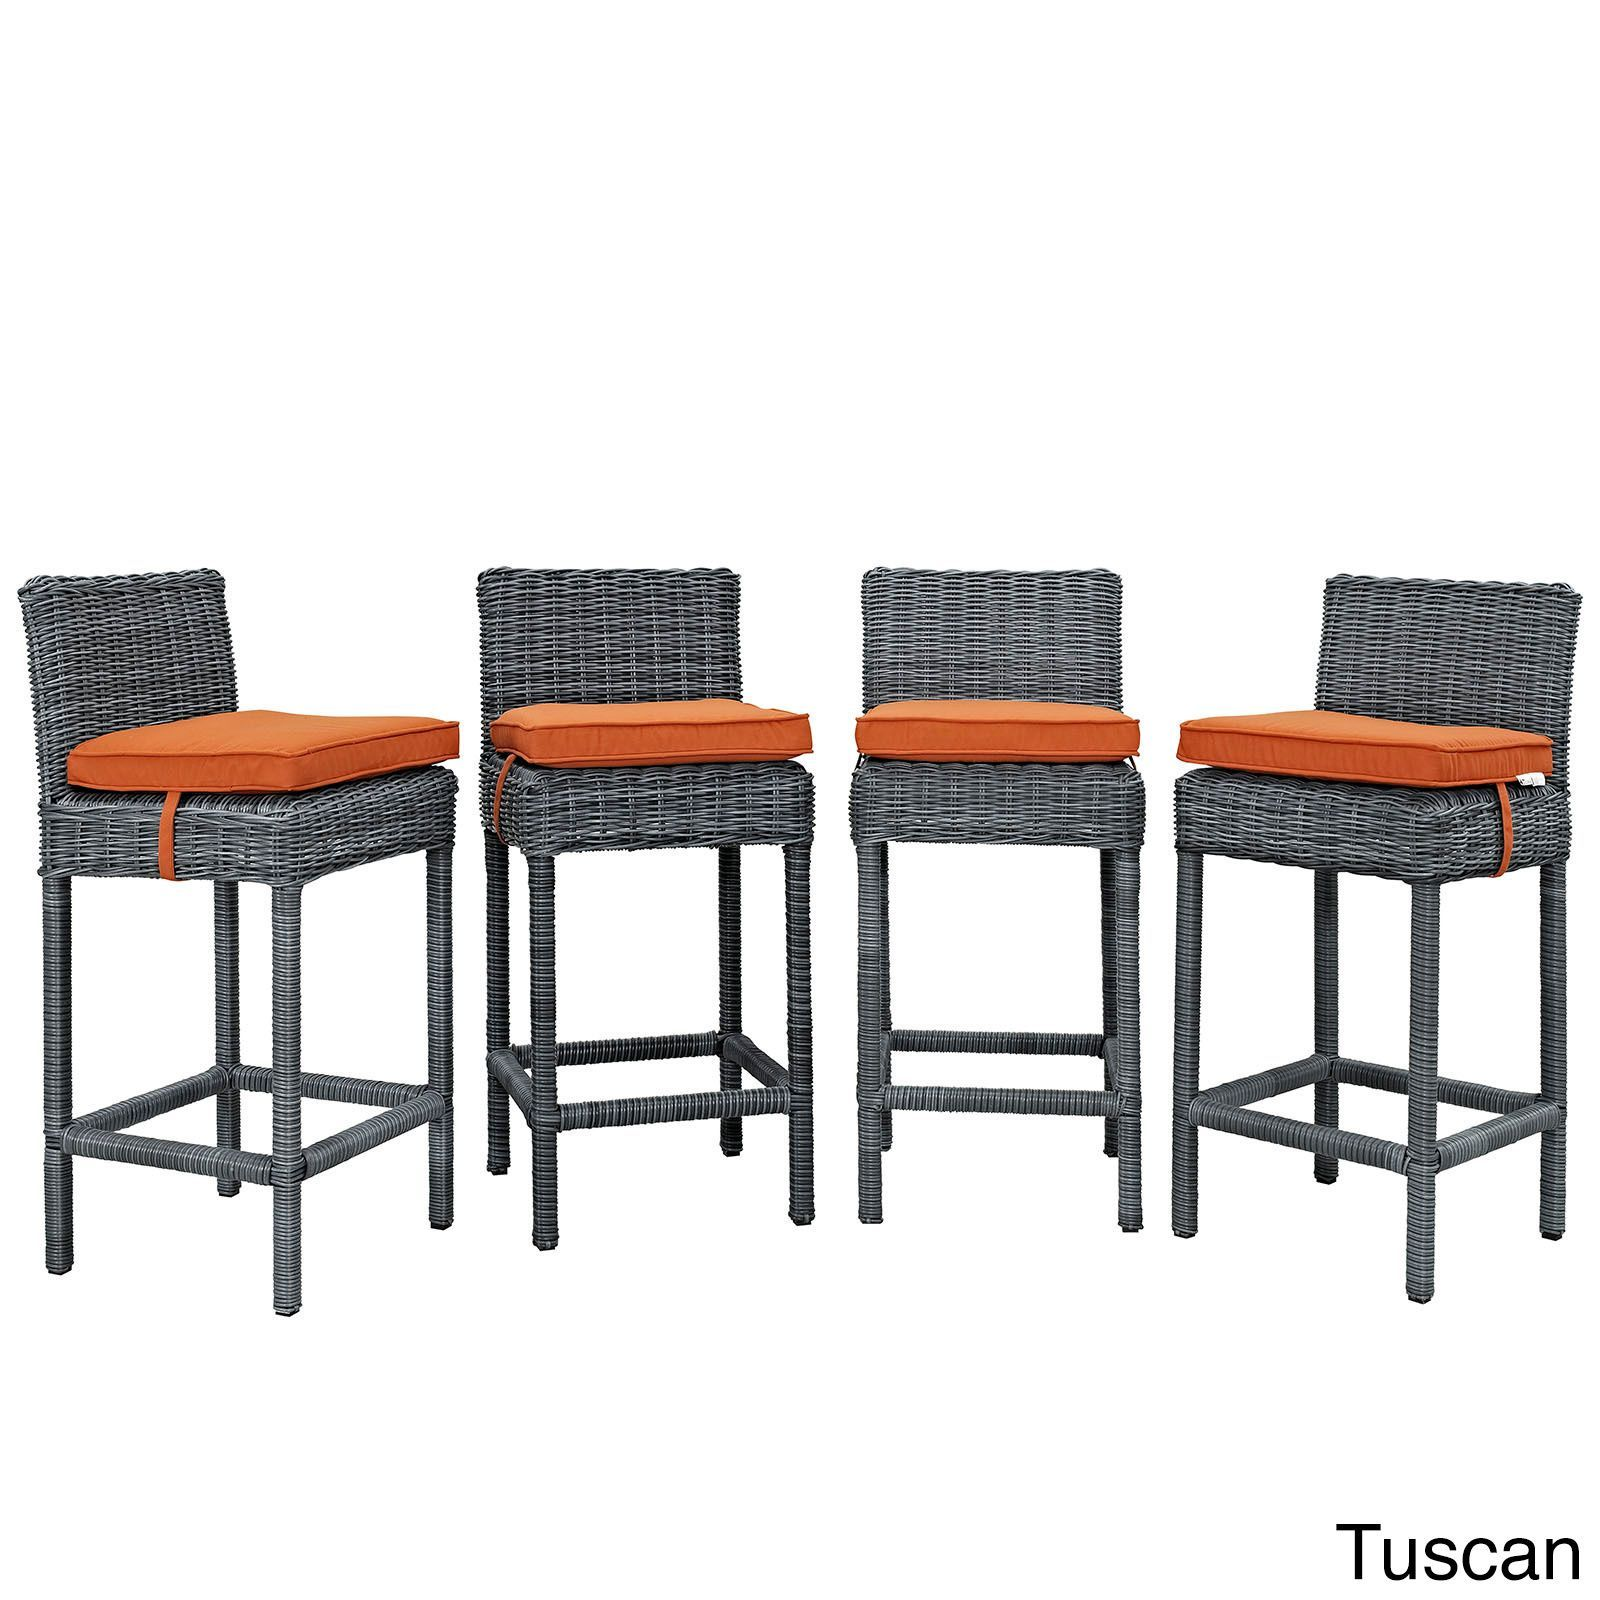 Modway Invite Synthetic Rattan Outdoor Patio Bar Stool Set of 4